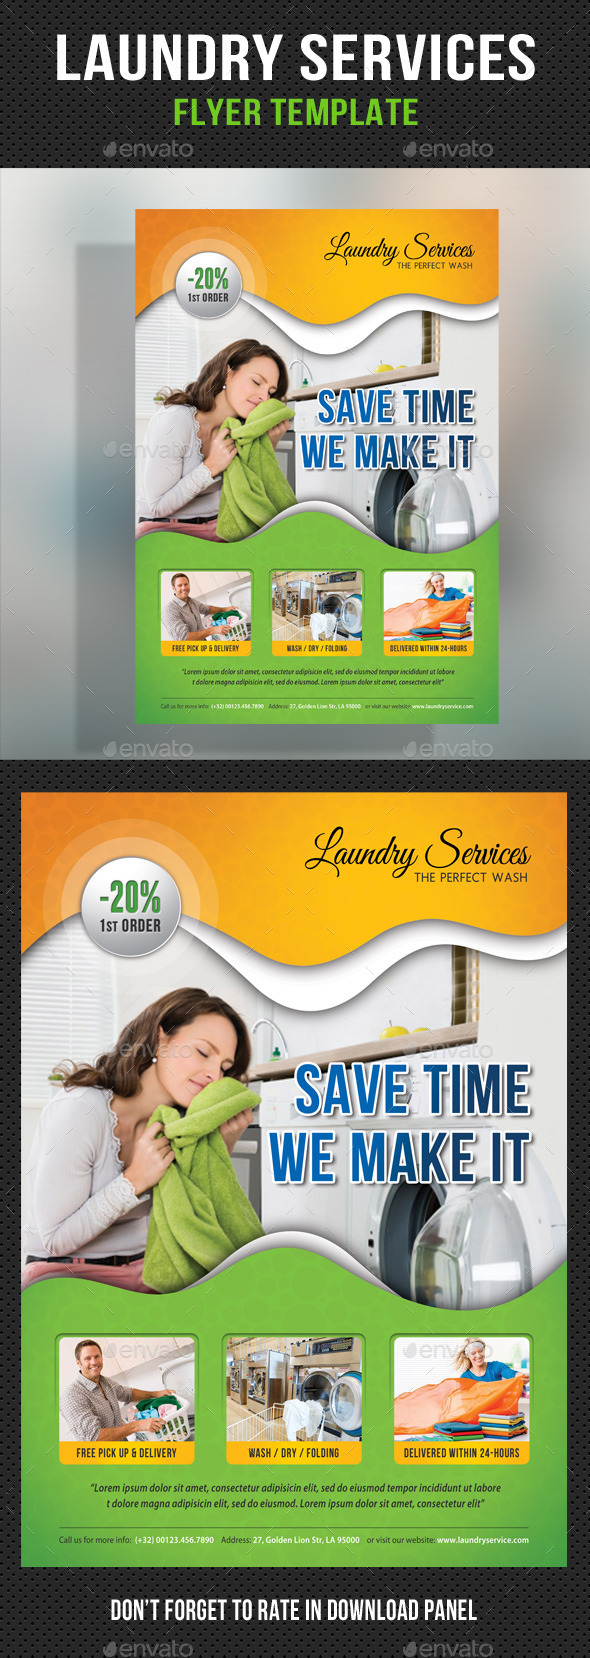 Laundry services flyer template by rapidgraf graphicriver for Laundry flyers templates